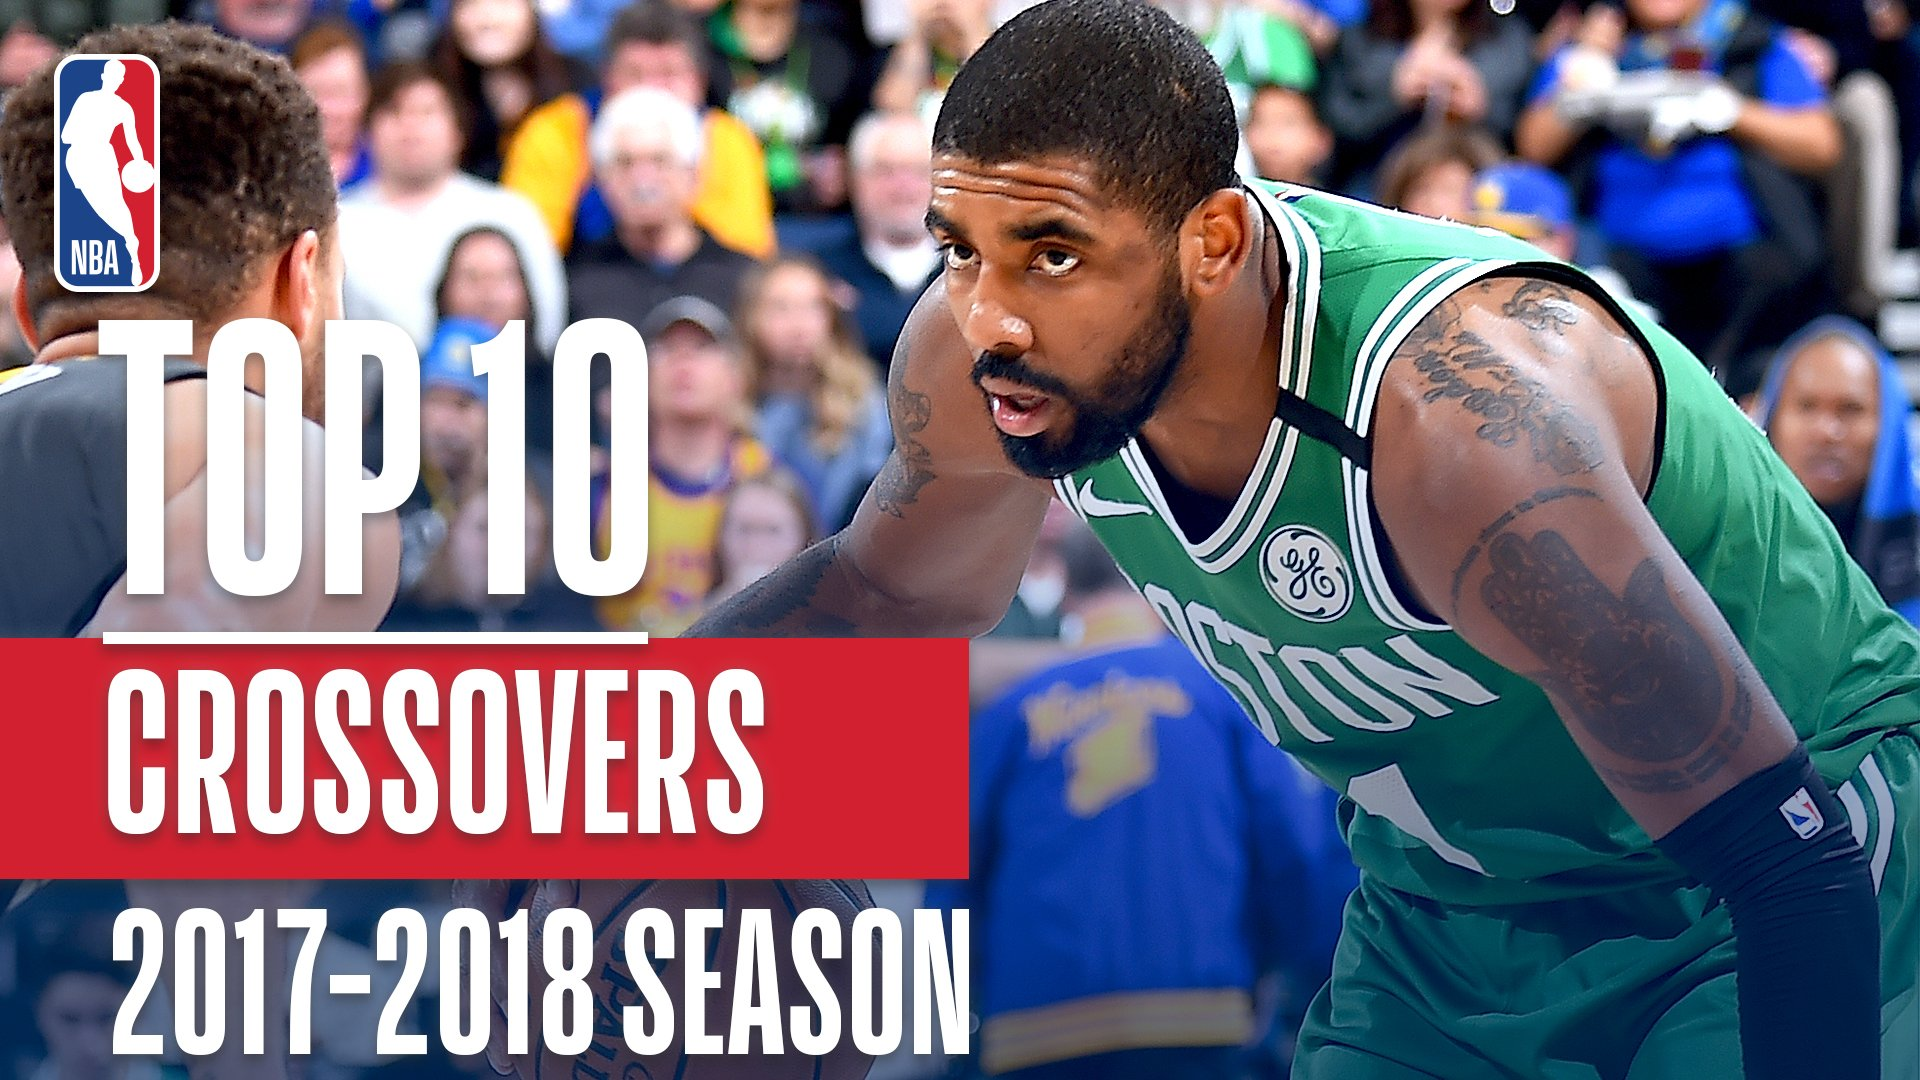 Criss-crossin' with the TOP 10 CROSSOVERS from the 2017-18 season! #BESTofNBA https://t.co/Ks1mcCYEUL